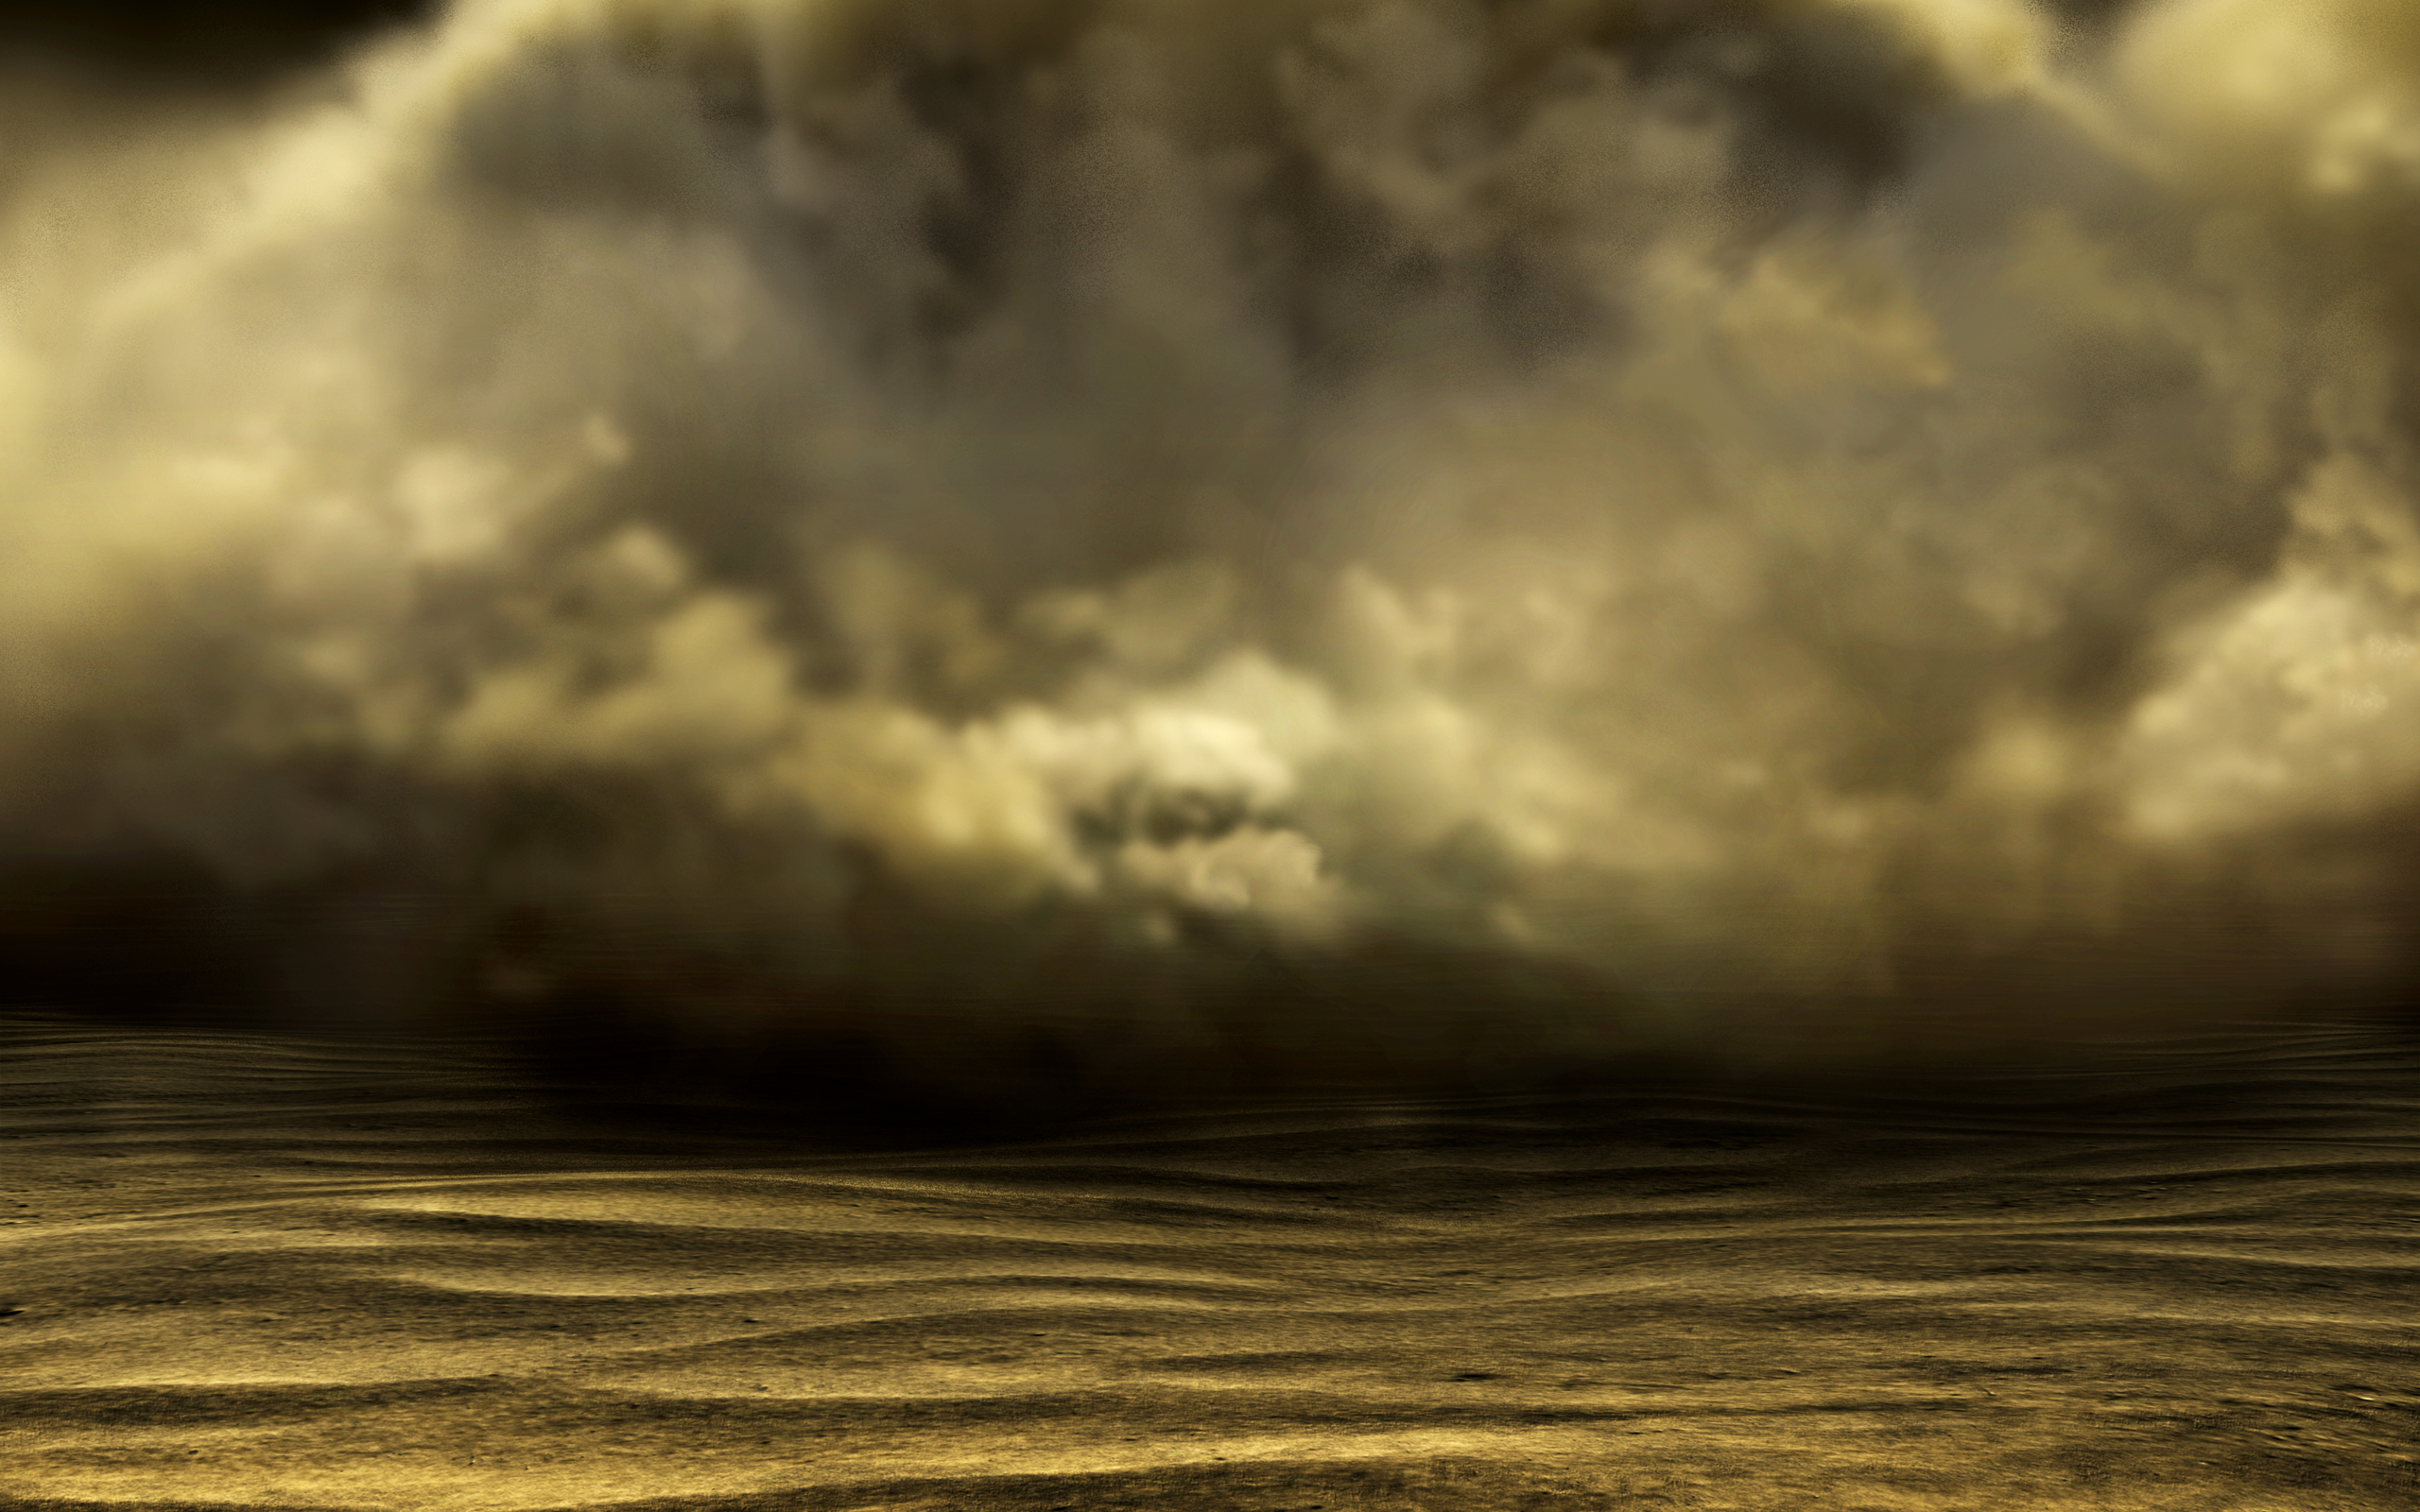 images of desert thunderstorm wallpaper - #spacehero